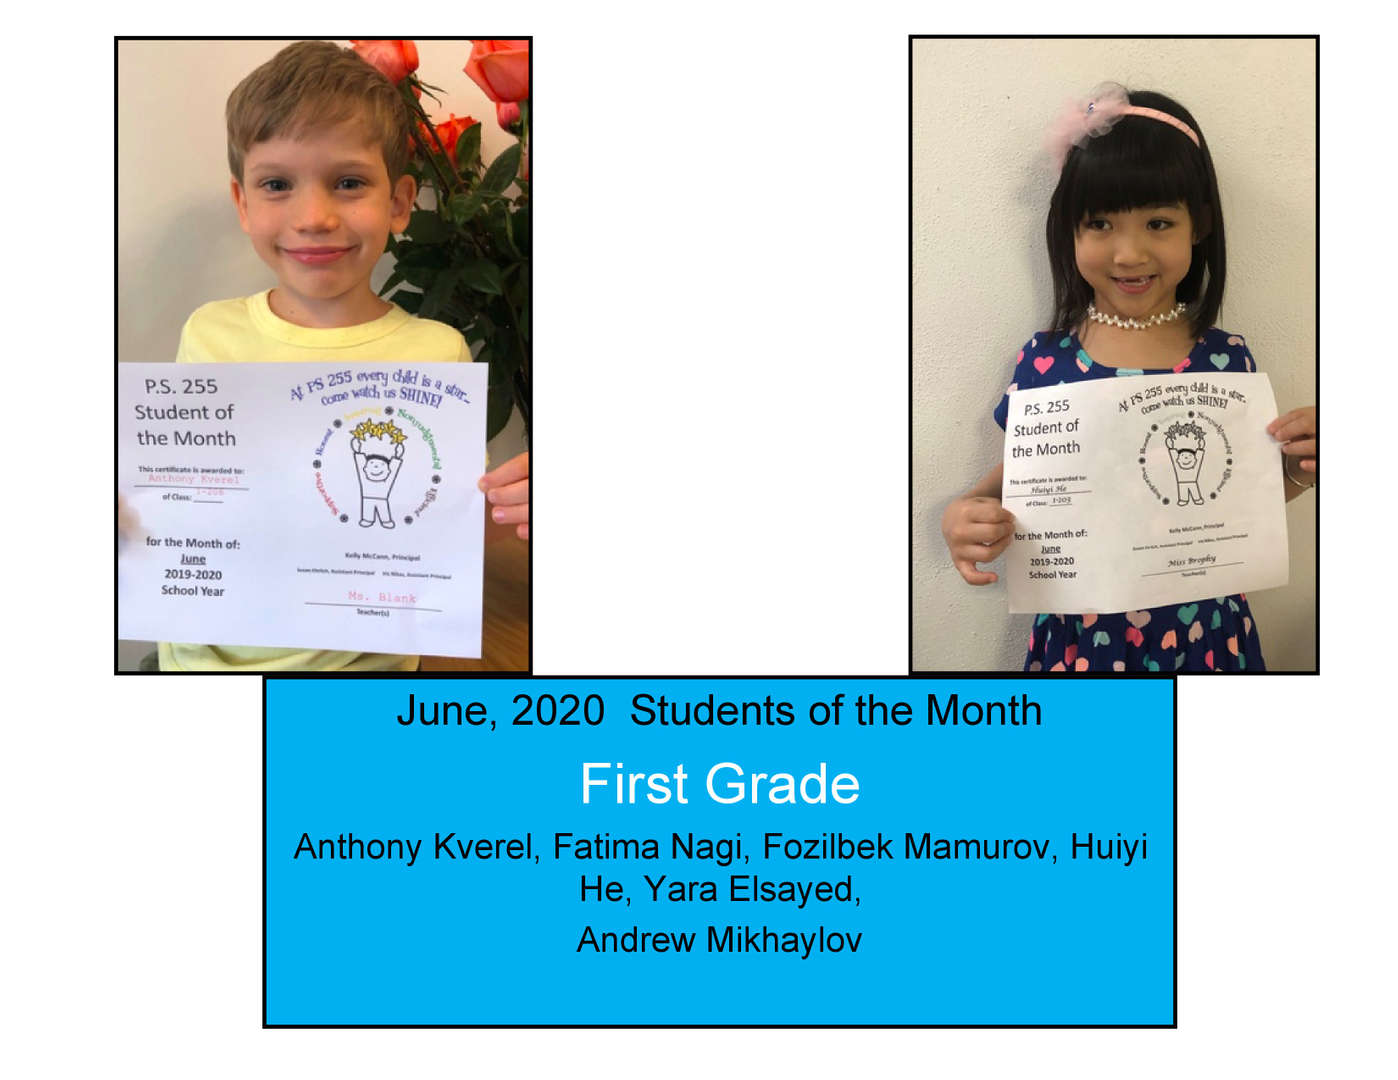 Two smiling students of the month